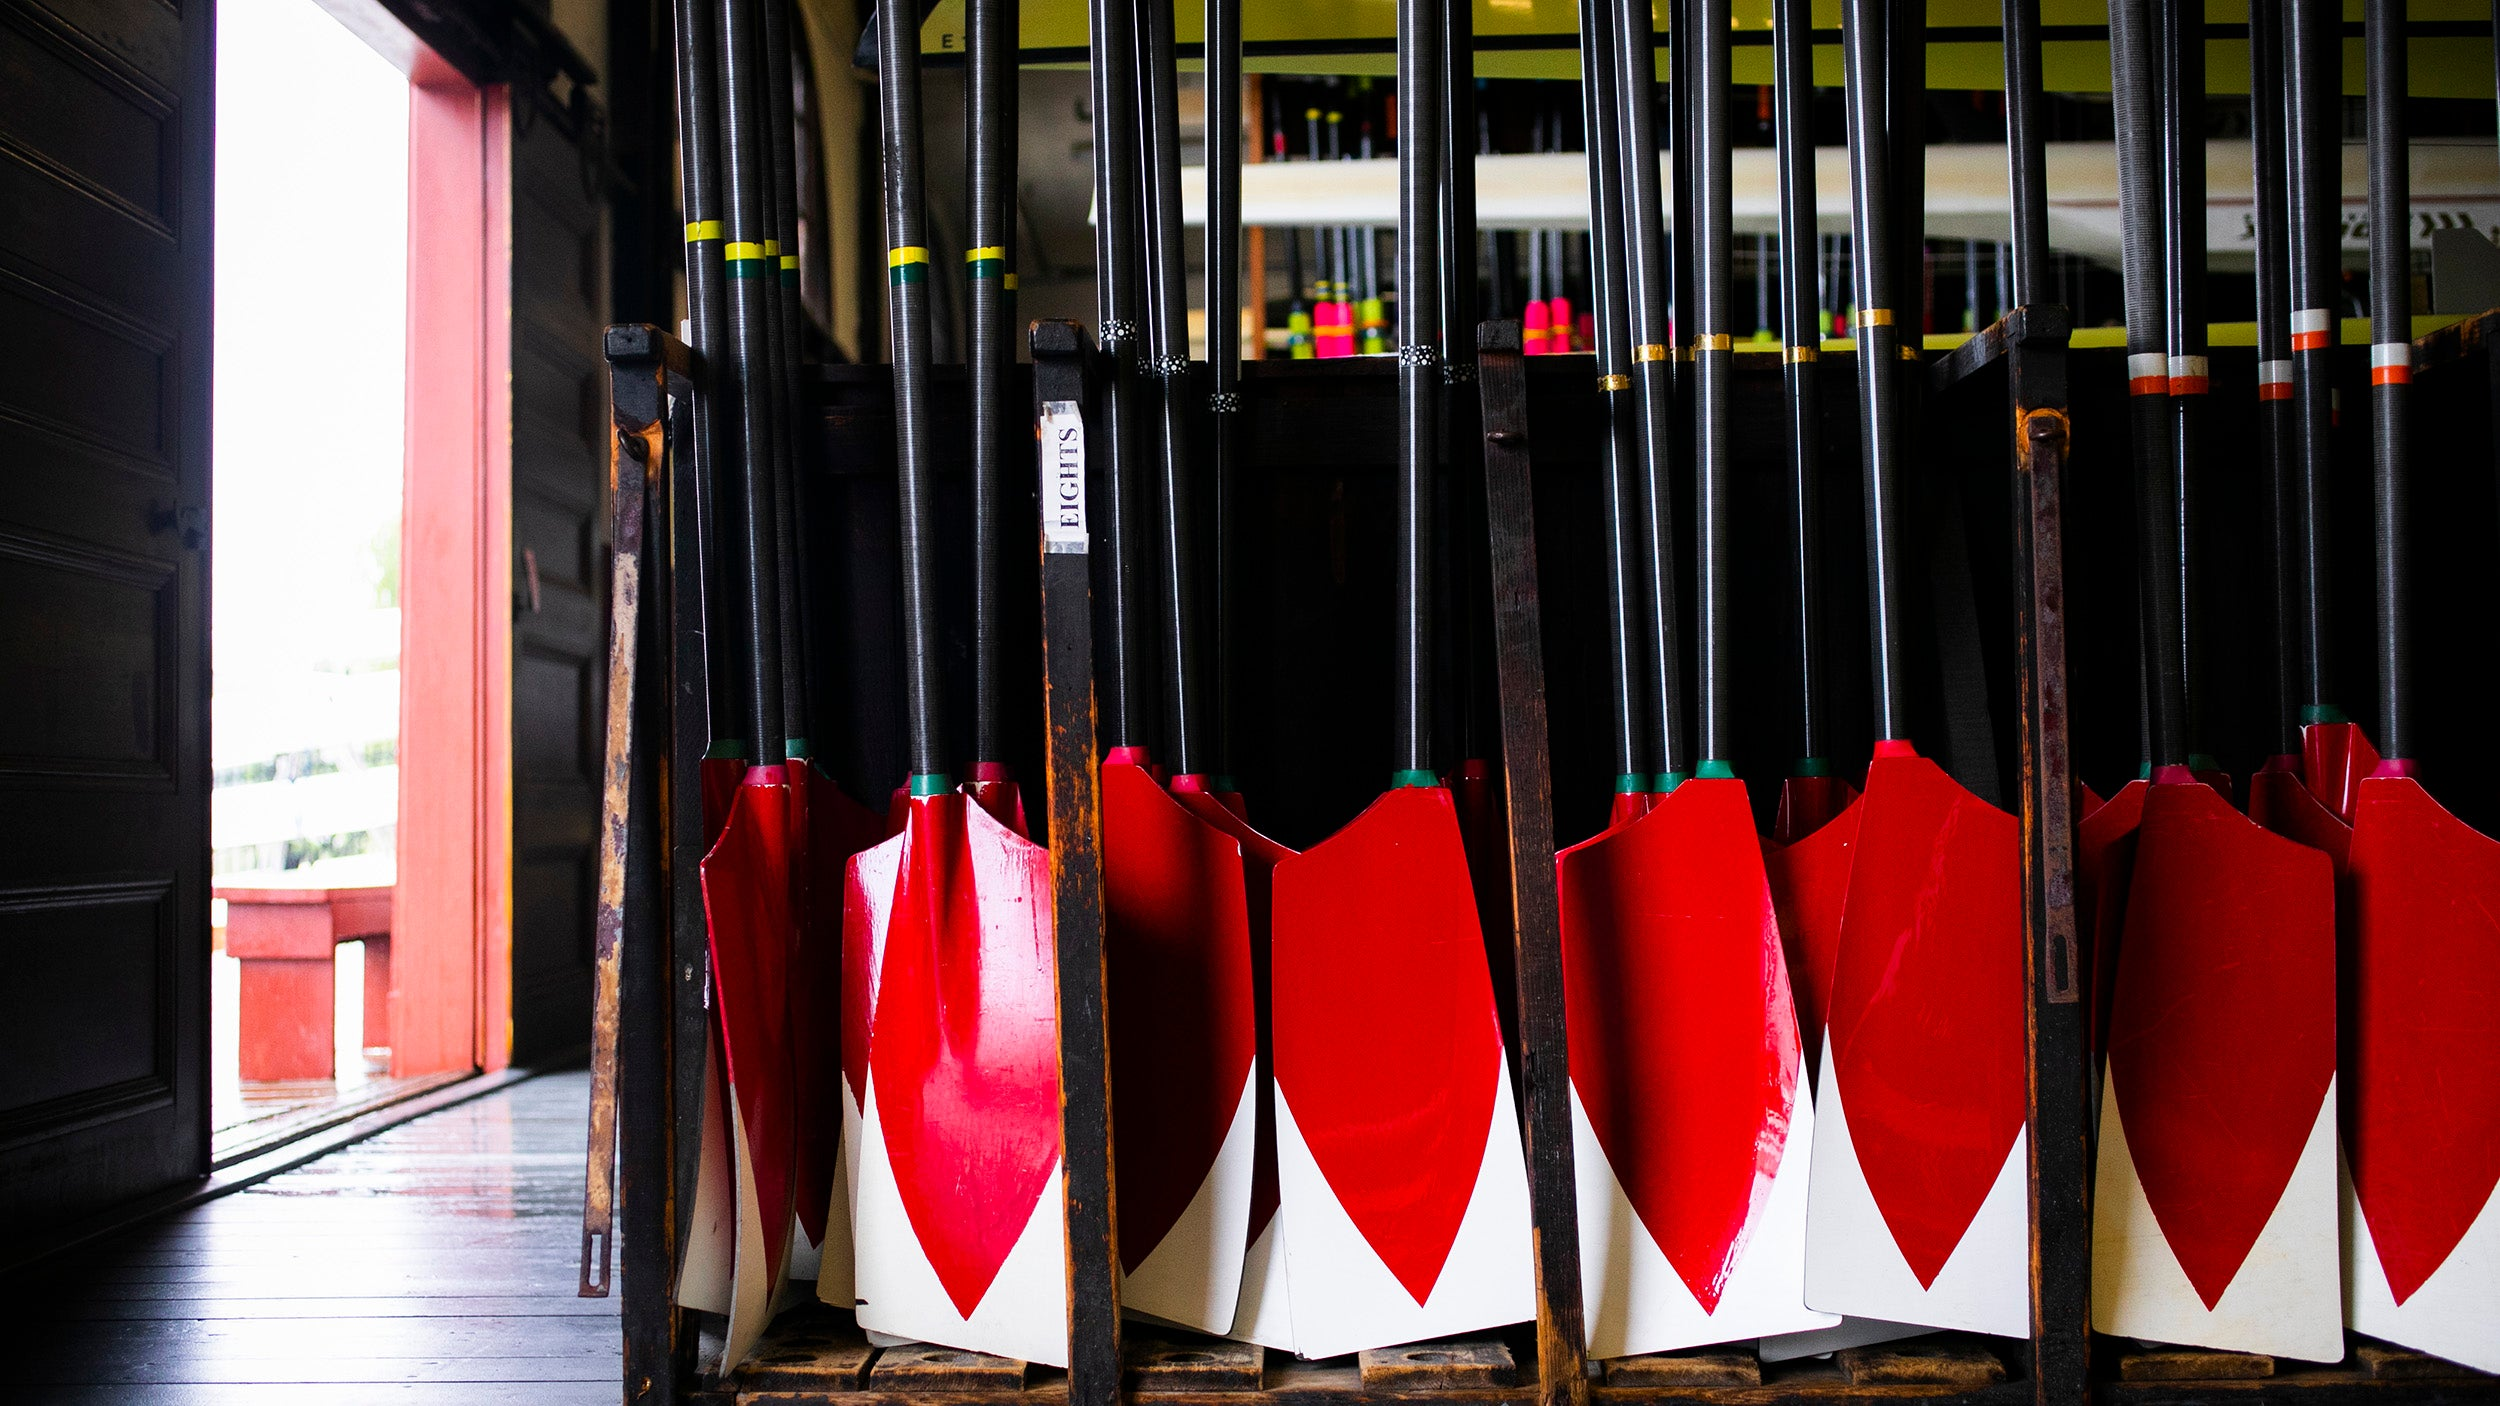 Rowing blades.